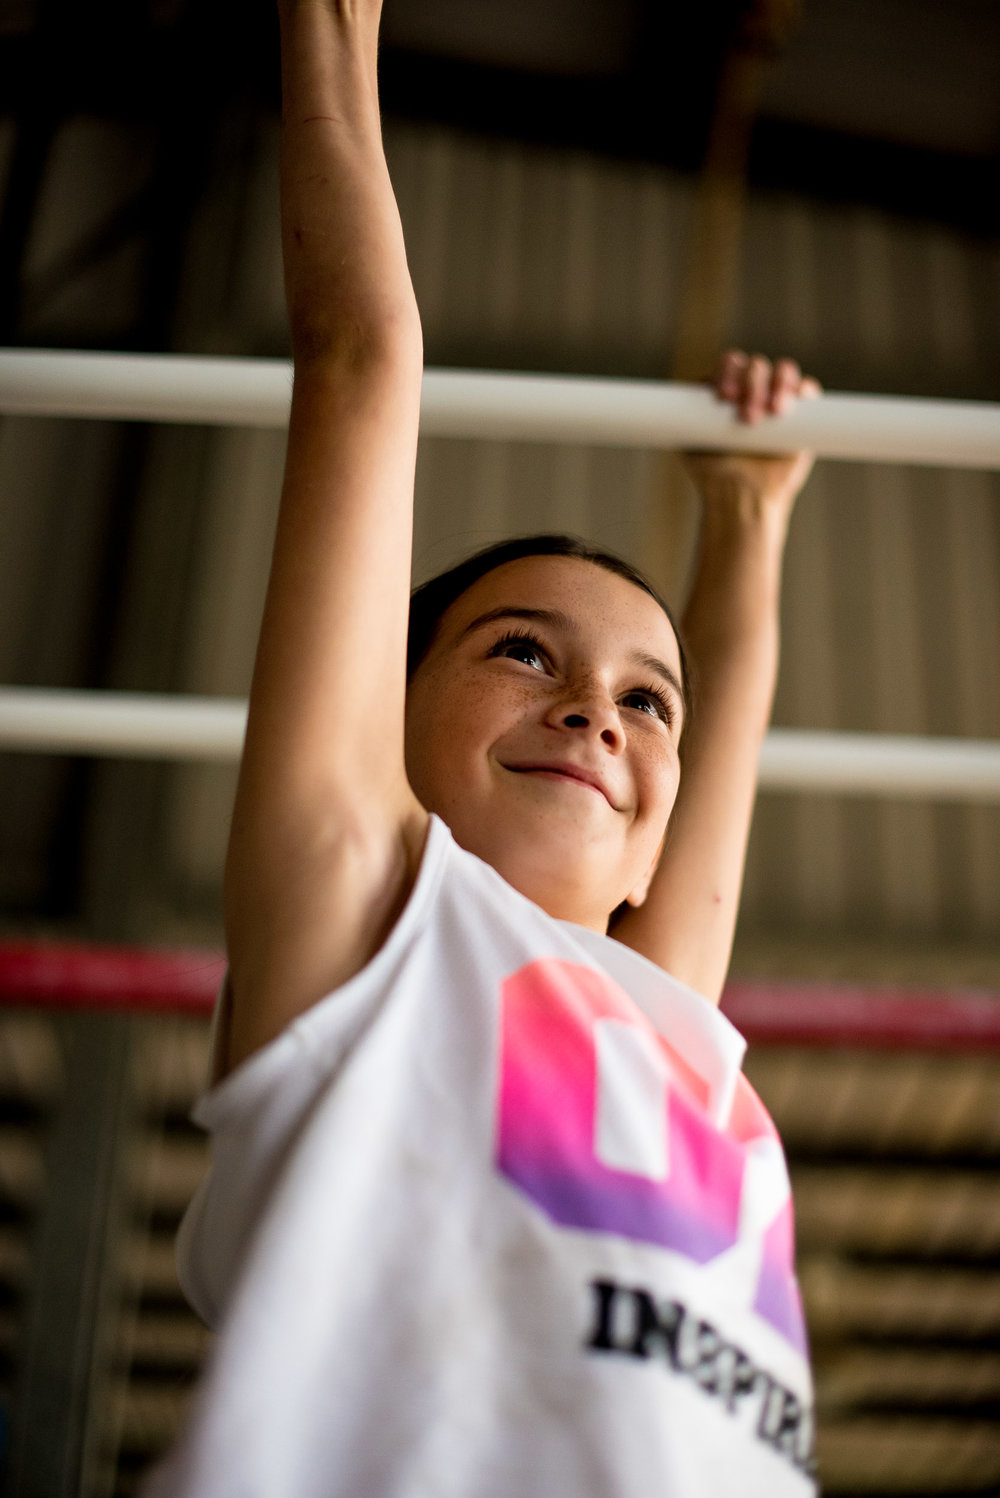 Crossfit kids are healthy, happy, fit kids!